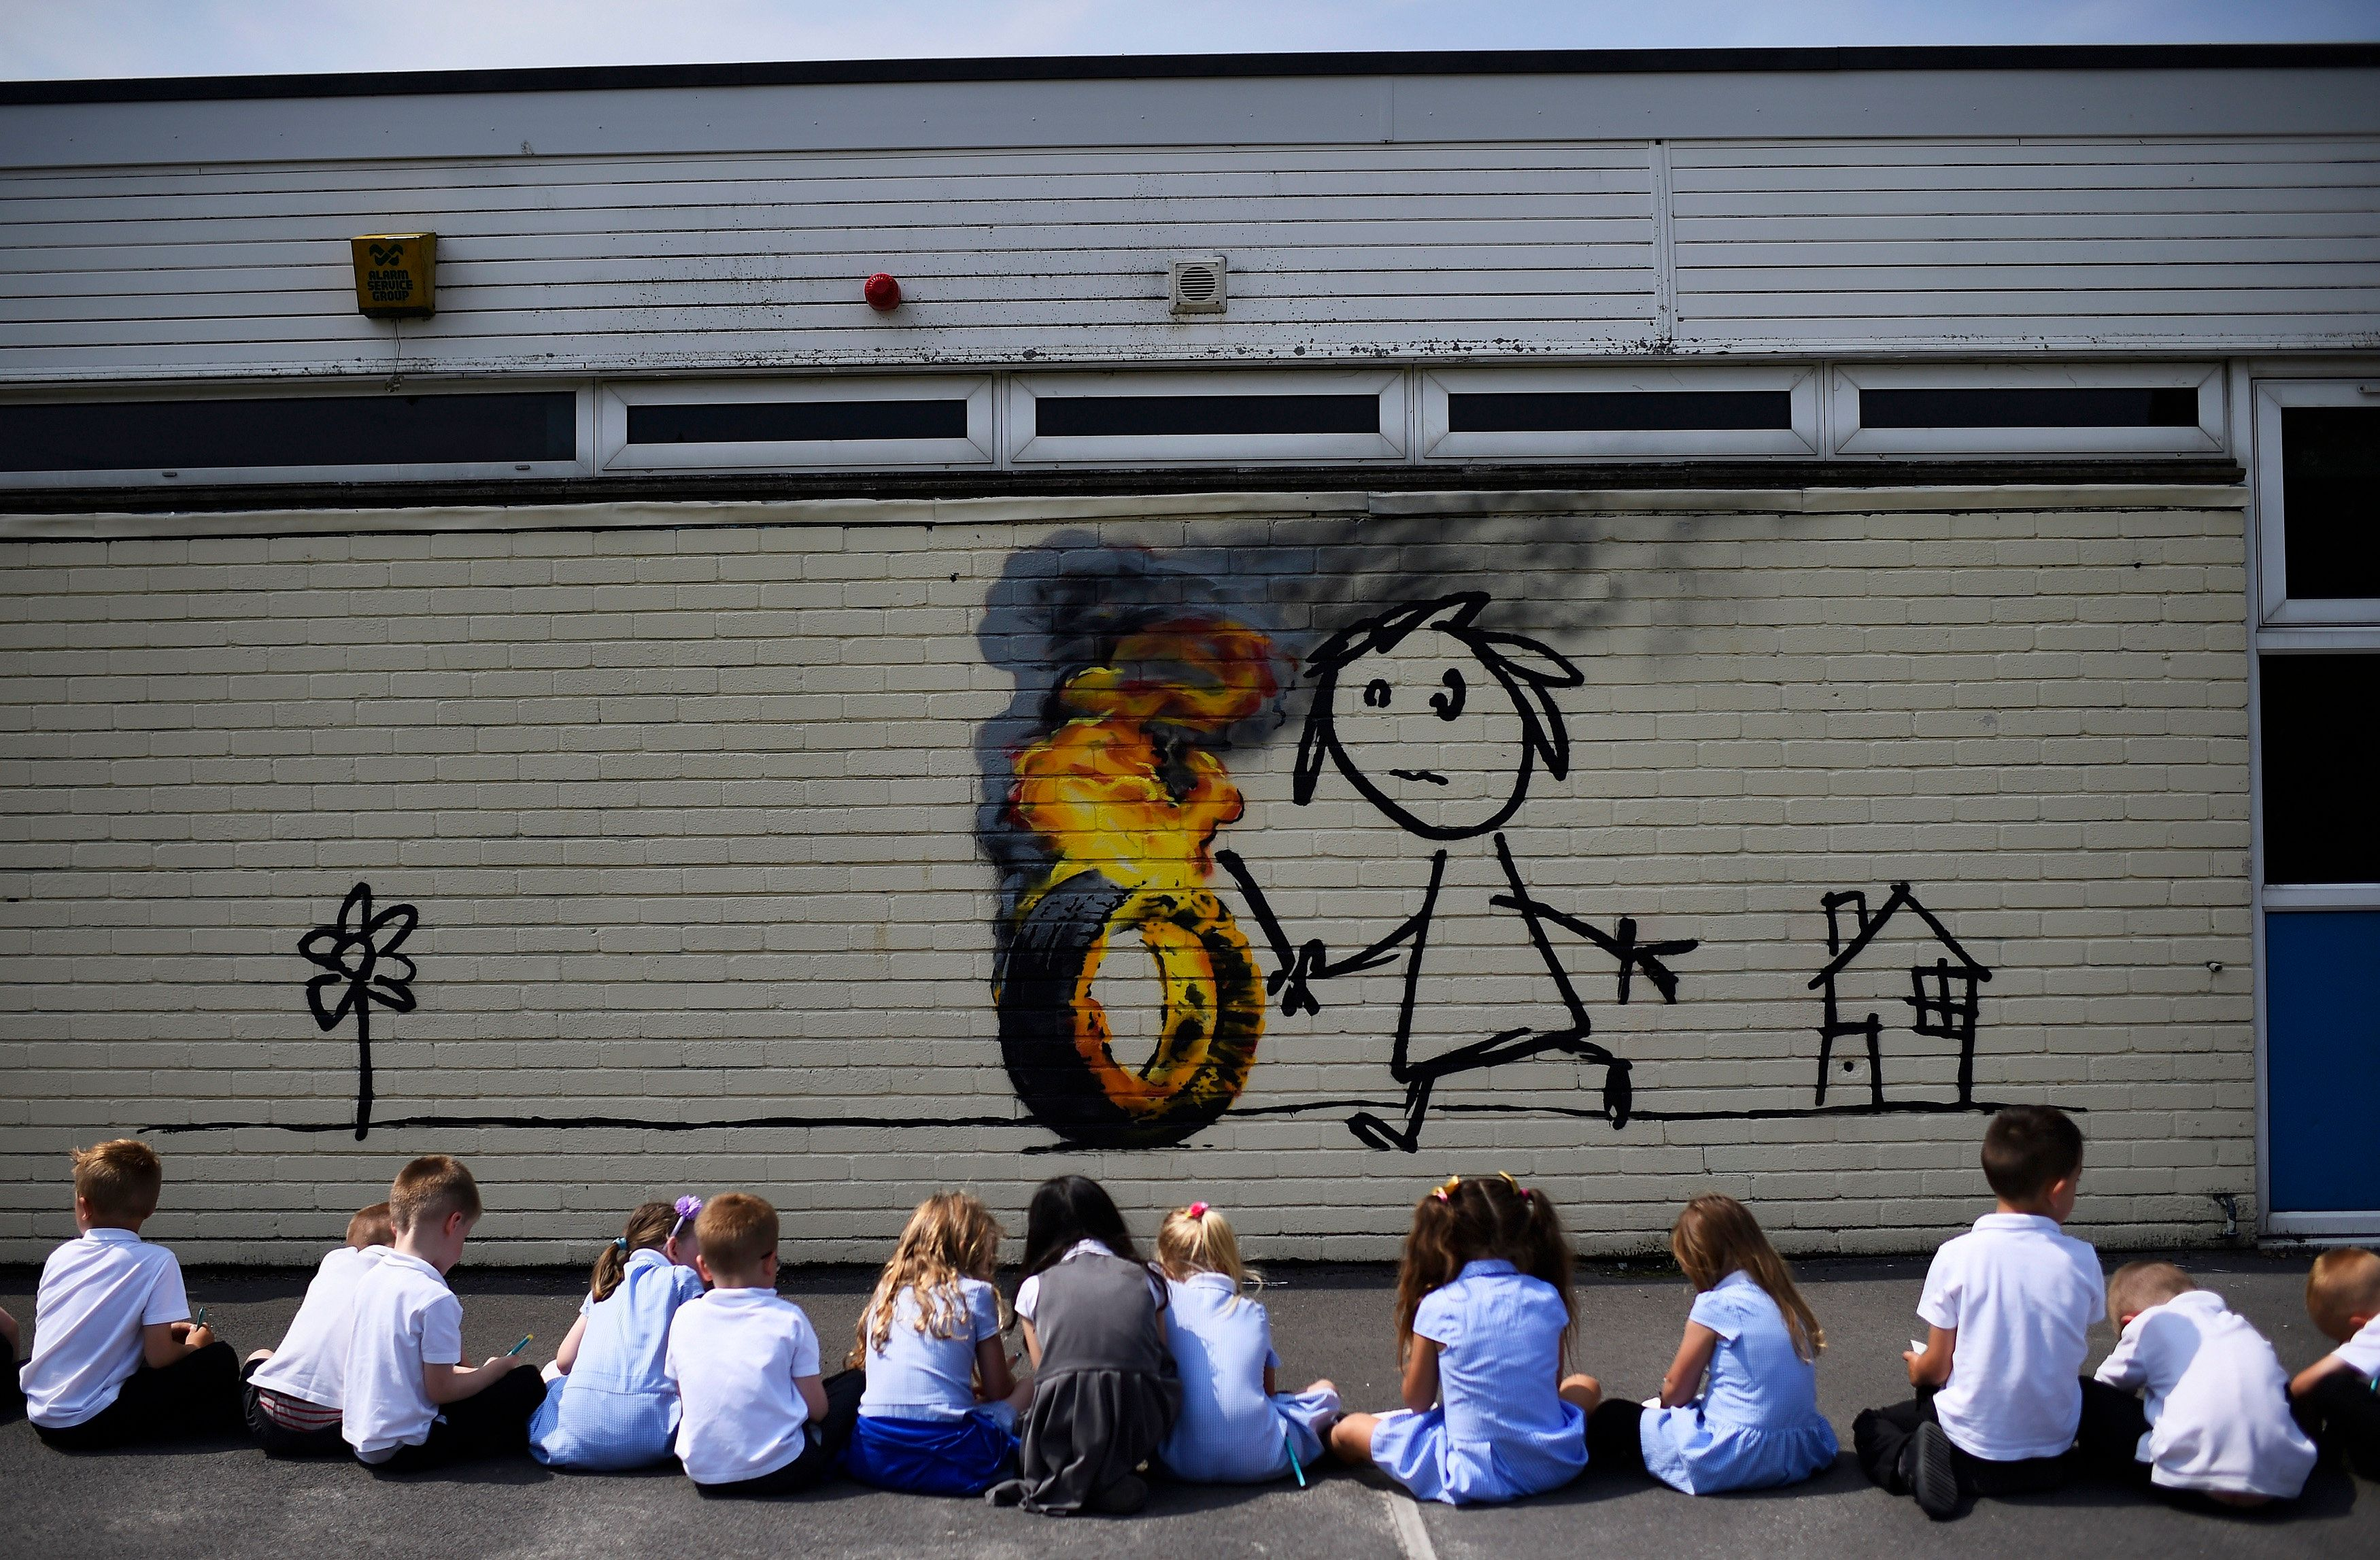 Reception class school children sit in a row as they draw a mural, attributed to graffiti artist Banksy, painted on the outside of a class room at the Bridge Farm Primary School in Bristol, Britain June 6, 2016.    REUTERS/Dylan Martinez